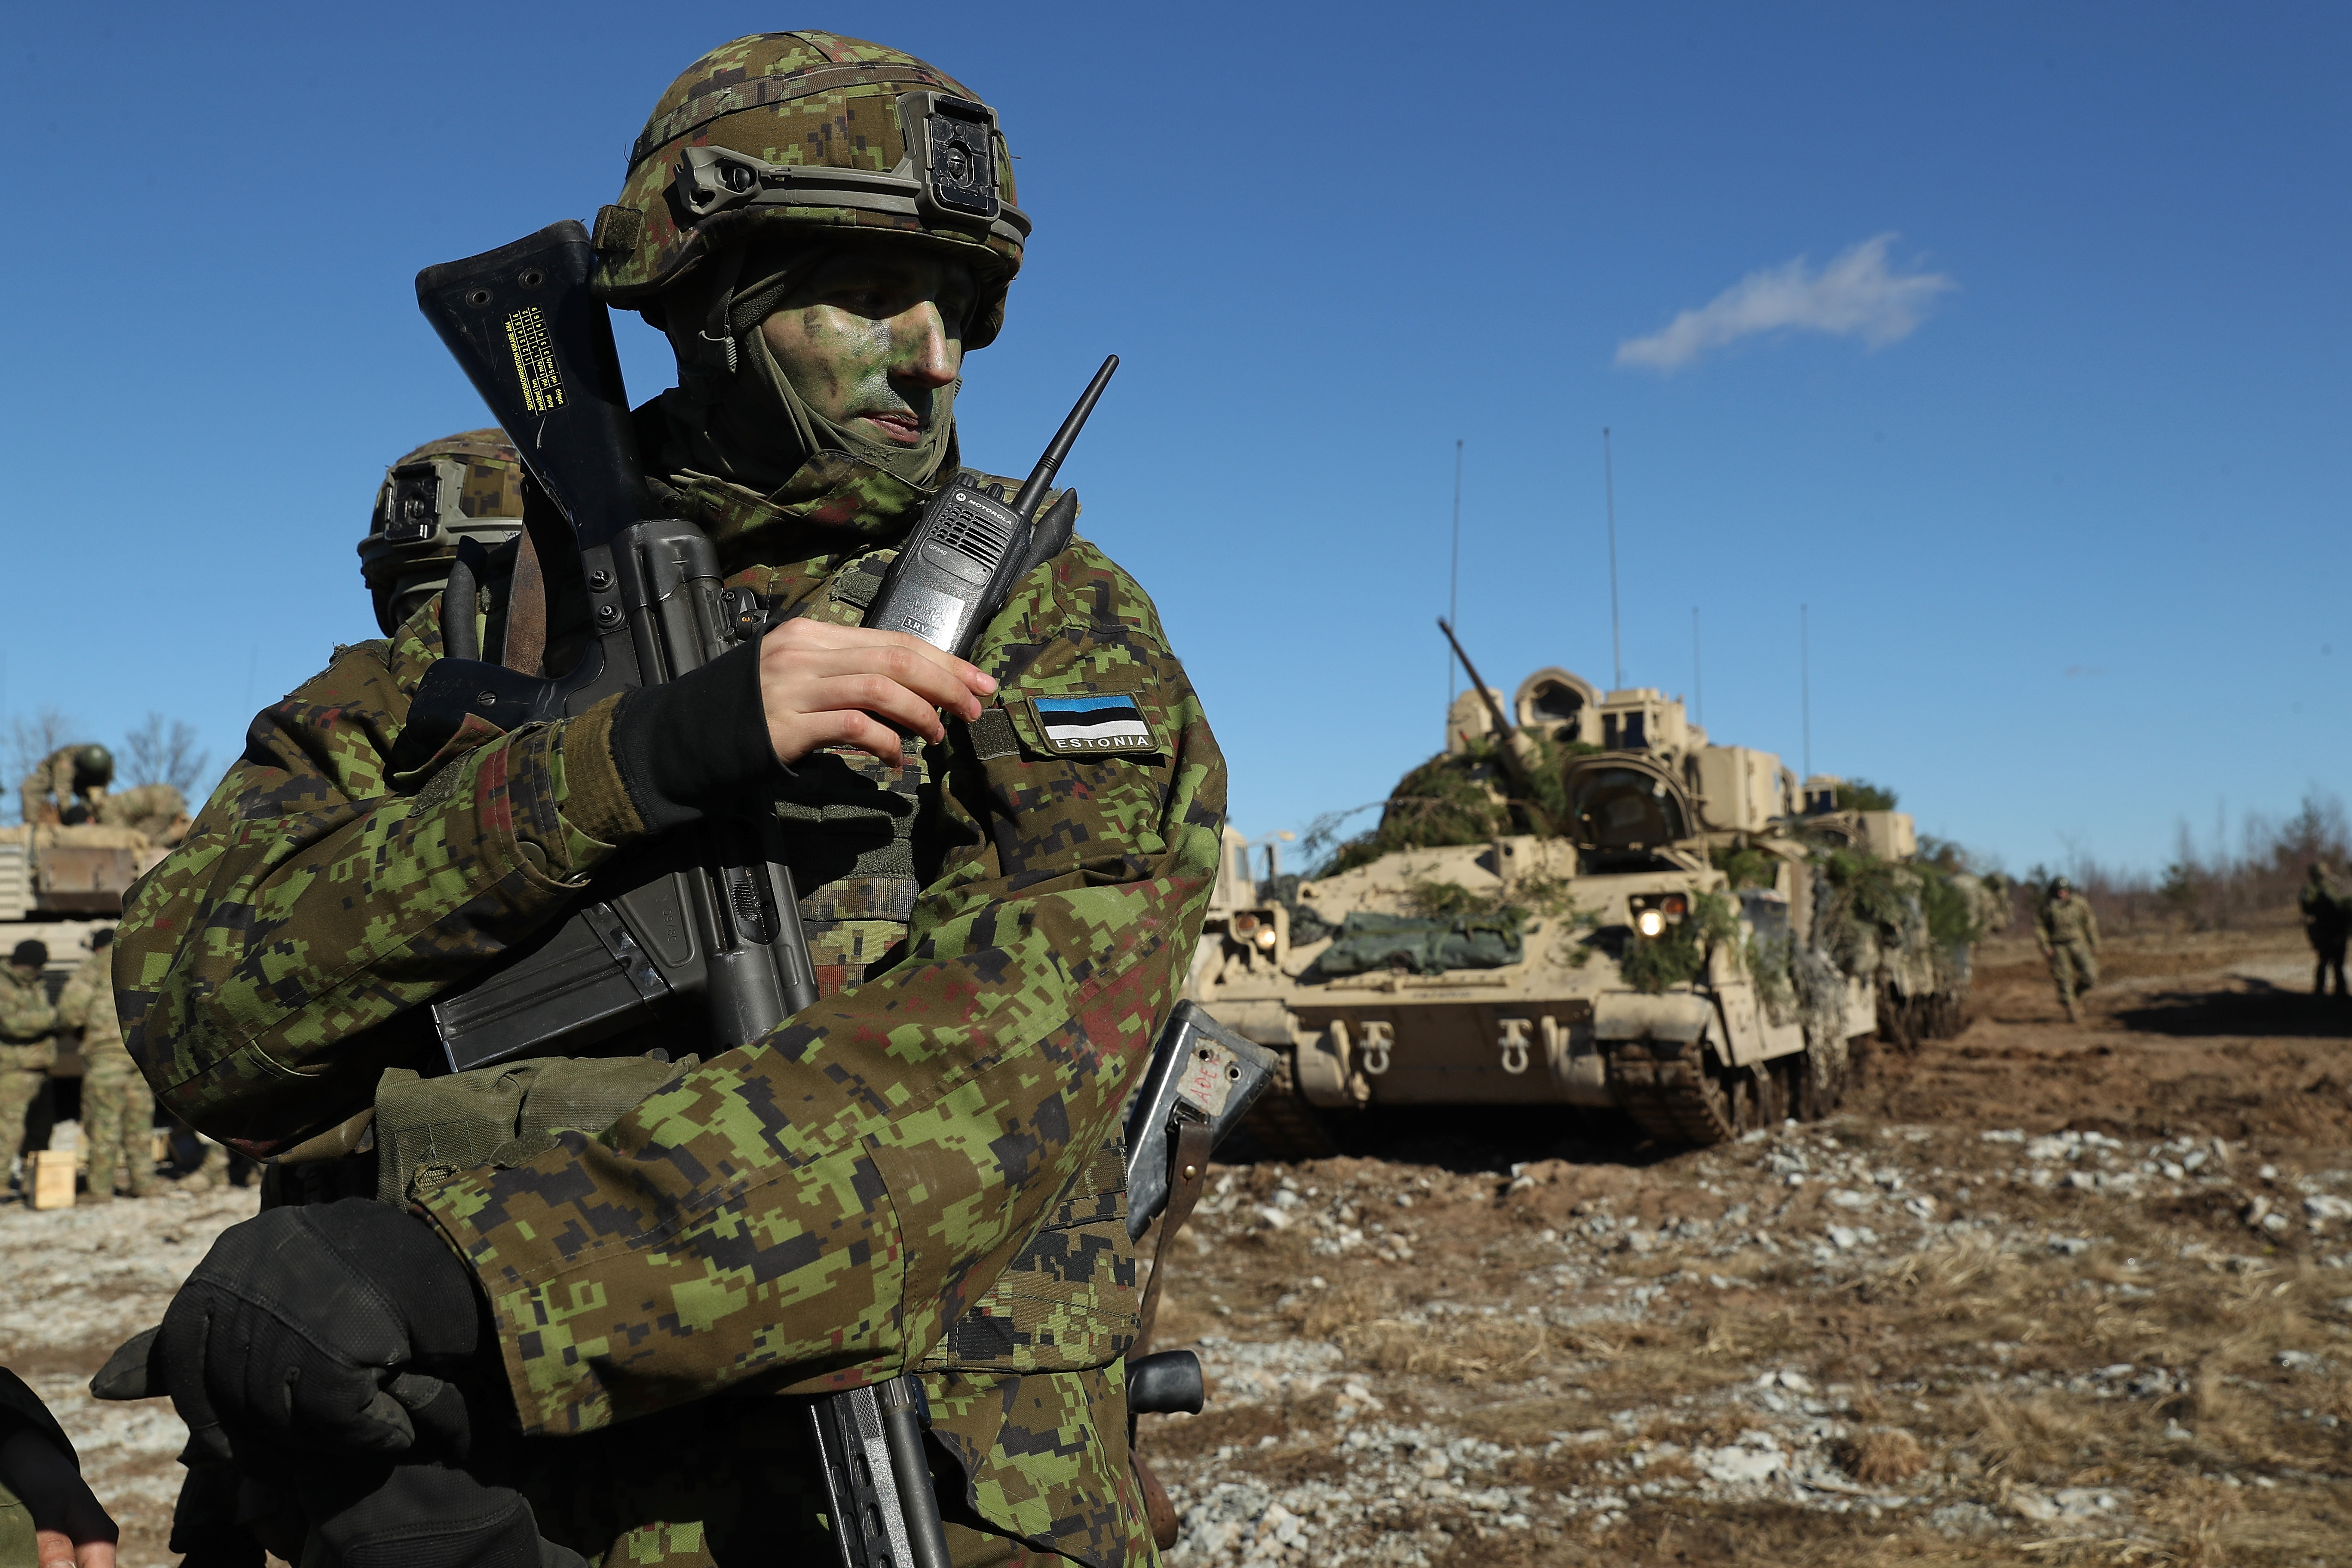 Estonian official: Cyber must be part of core military education